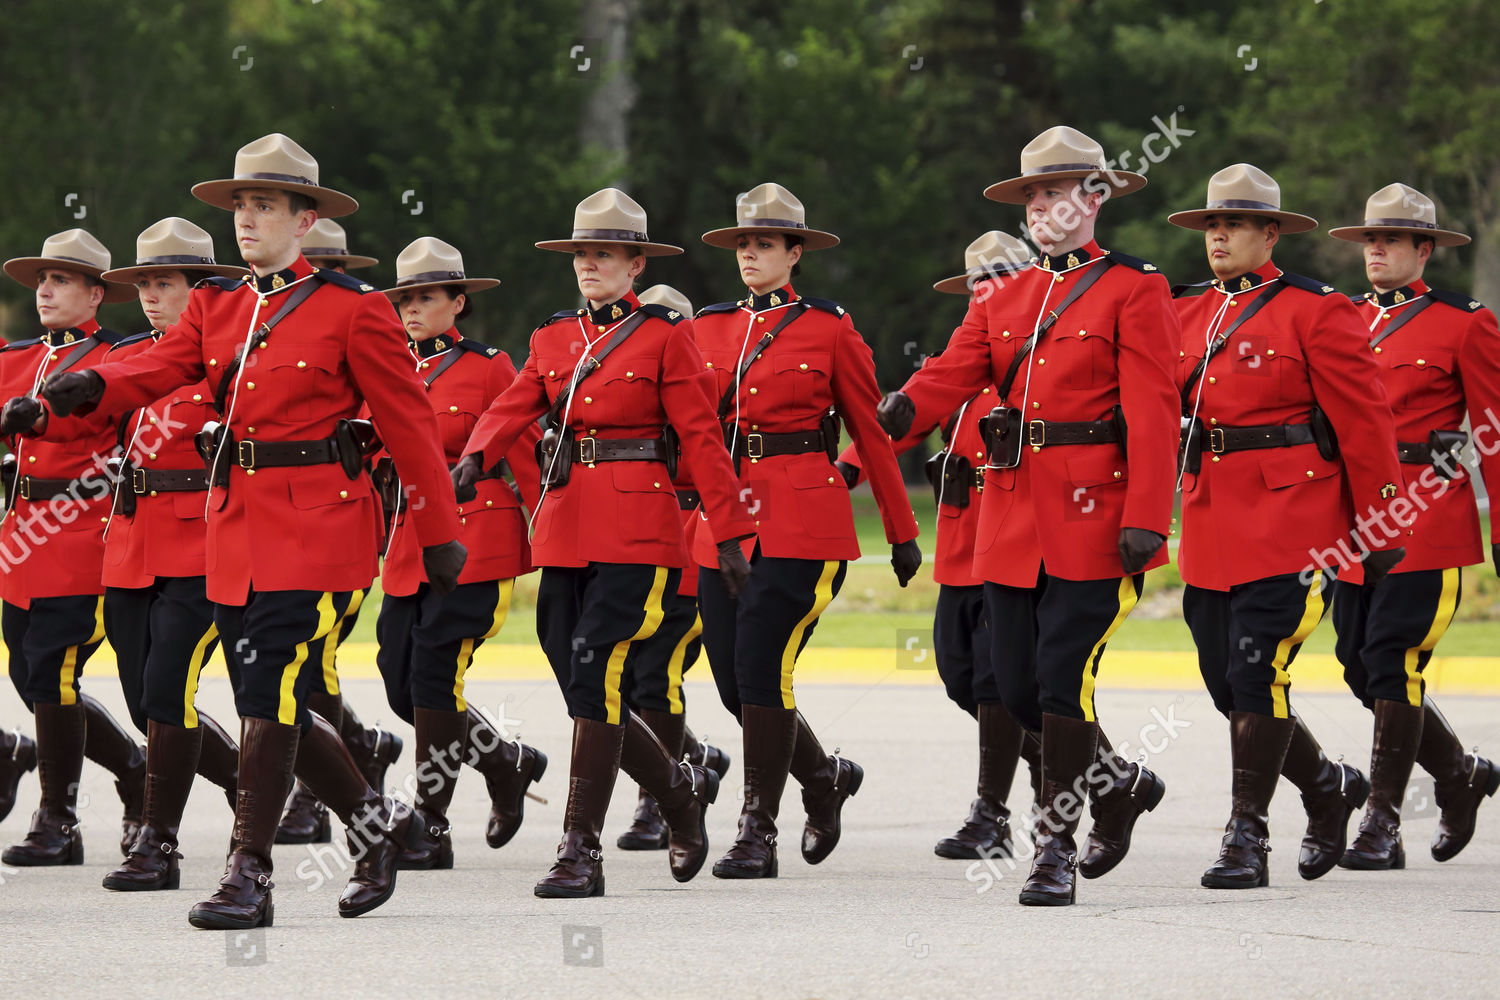 Sunset Retreat Ceremony Royal Canadian Mounted Police